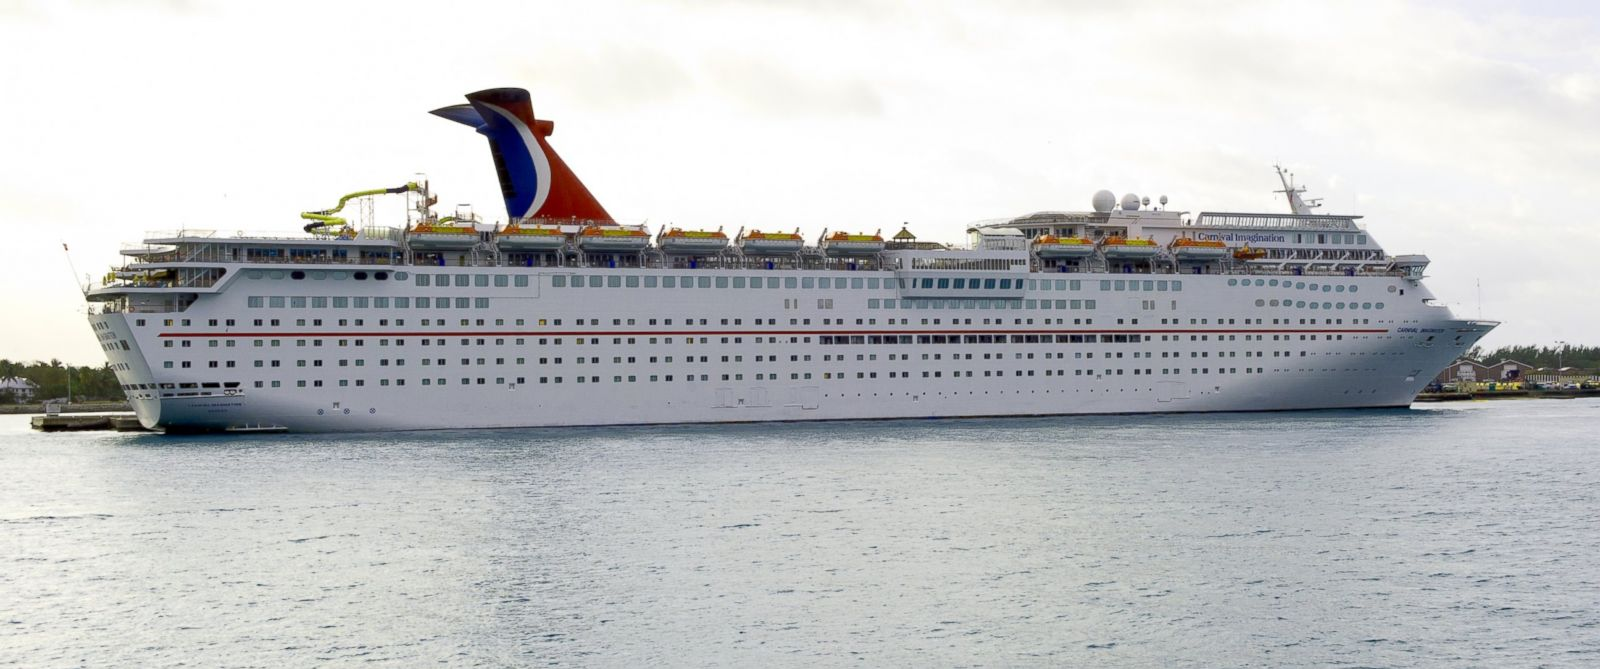 PHOTO: The Carnival Cruise ship Imagination sits in port February 19, 2013 in Key West, Florida.